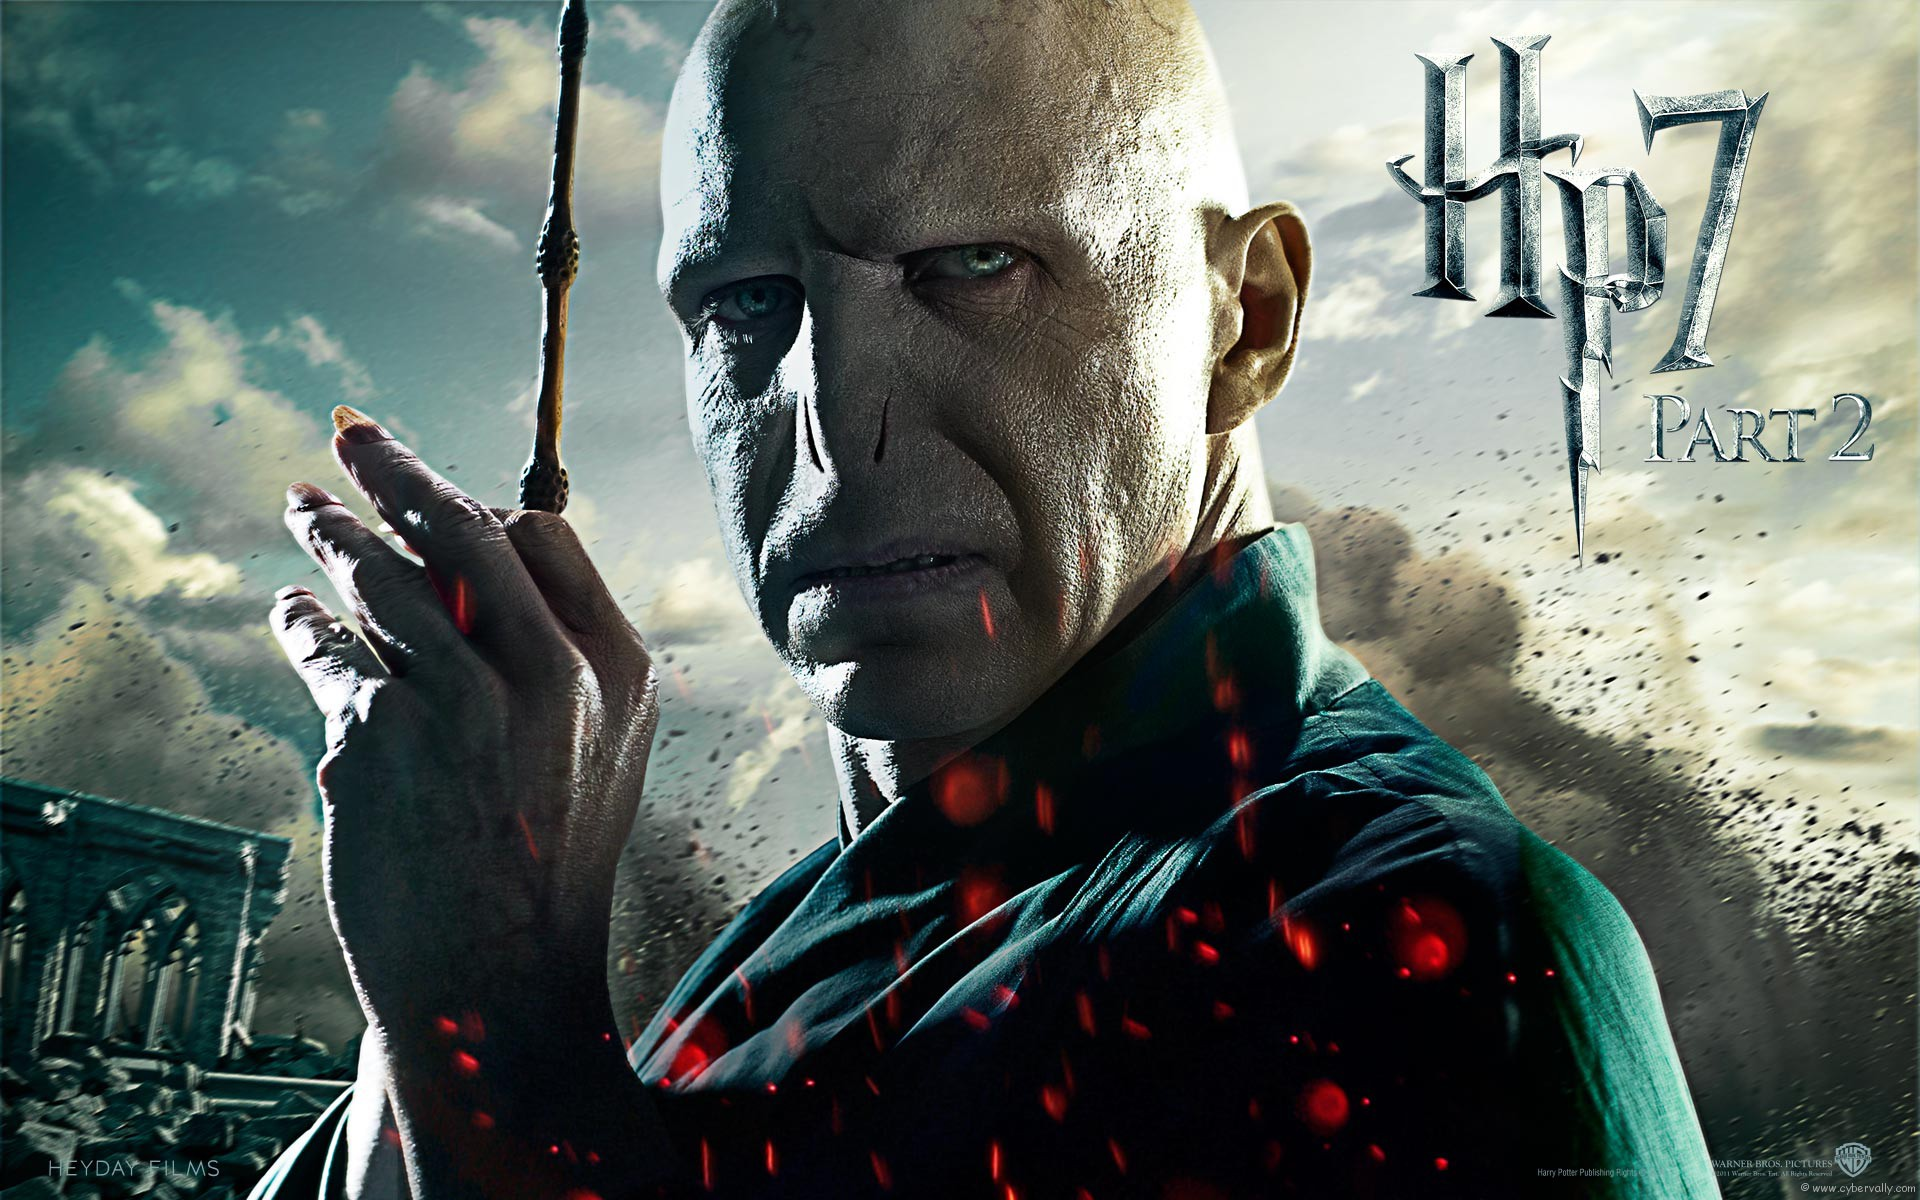 Fantastic Wallpaper Harry Potter Windows 7 - harry-potter-the-deathly-hallows-part-2-wallpaper7  Picture_661094.jpg